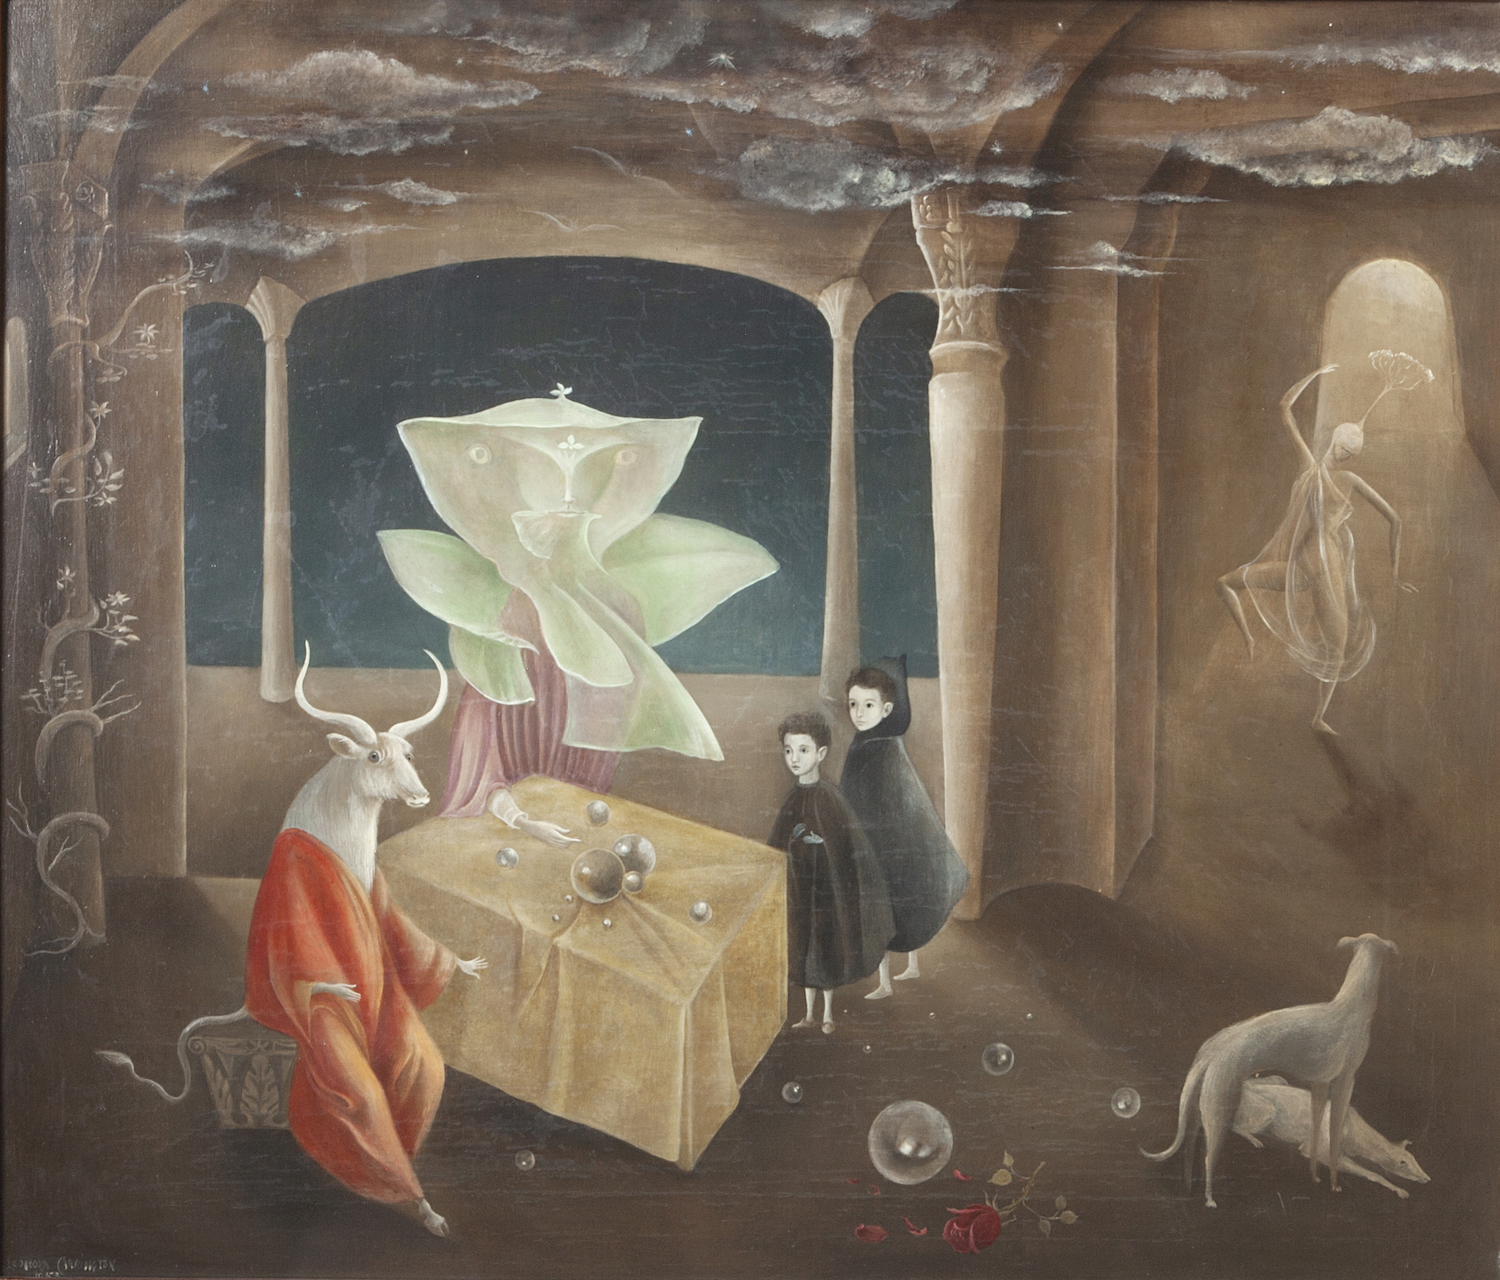 Leonora Carrington,  And Then We Saw the Daughter of the Minotaur! , 1953, Oil on Canvas, 23 3/5 x 27 1/2 inches (60 x 70 cm), © 2019 Estate of Leonora Carrington / Artists Rights Society (ARS), New York